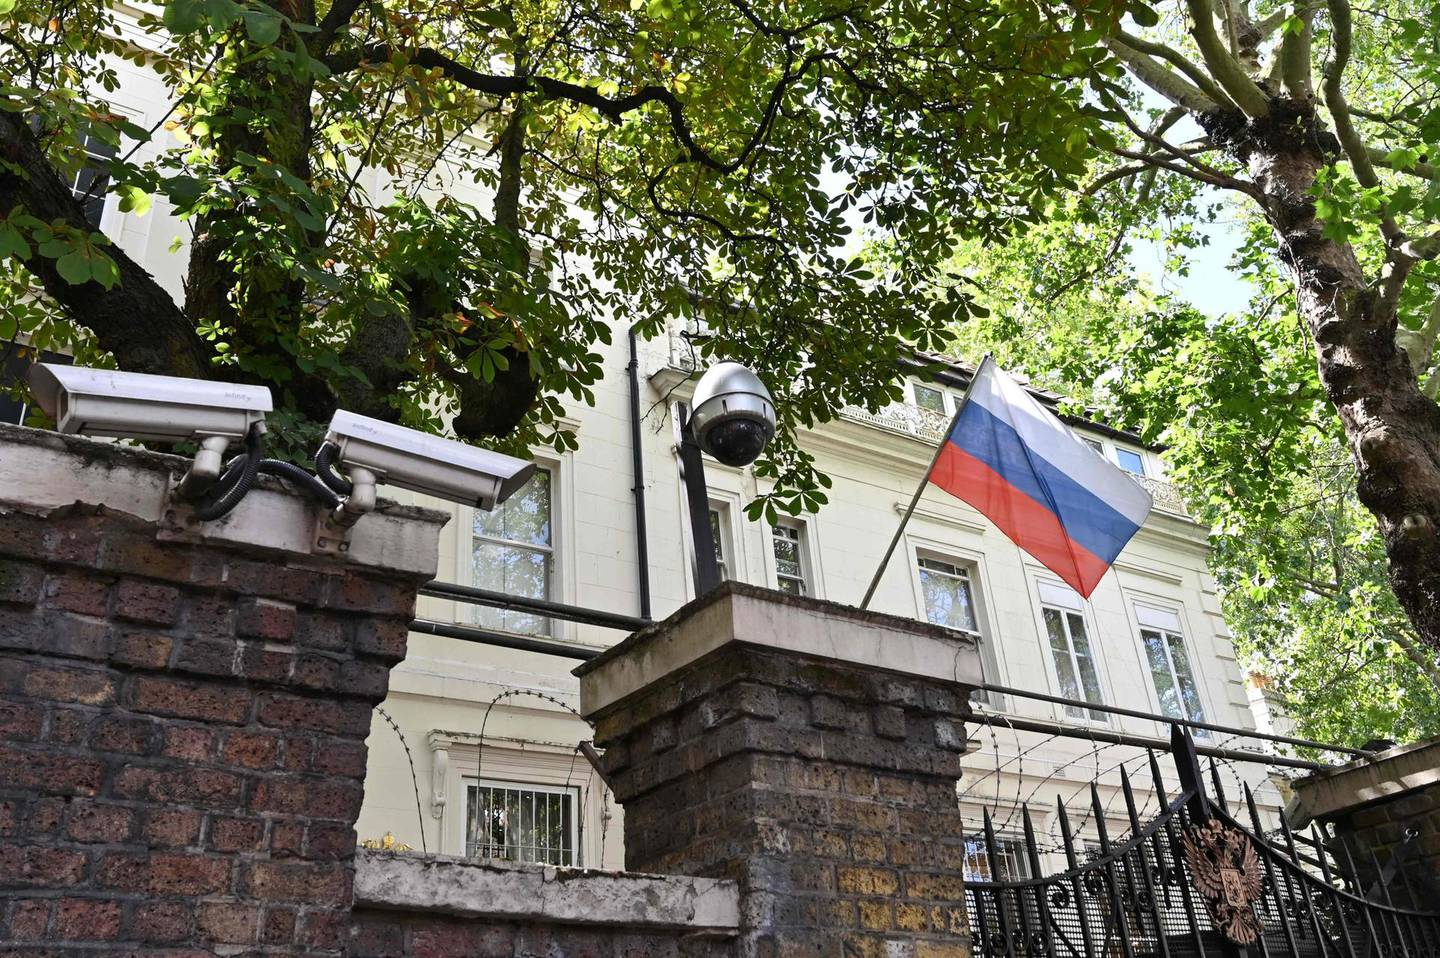 """(FILES) In this file photo taken on July 21, 2020 A Russian flag flies by surveillance cameras at the entrance to the Russian consulate in London.  Russia's ambassador to Britain said on March 21, 2021 that diplomatic ties between the two countries were """"nearly dead"""", after a UK strategic review this week branded Moscow an """"acute direct threat"""". Andrei Kelin also criticised Britain's decision to bolster its nuclear stockpile, arguing the reversal of decades of policy was a violation of various international agreements.  / AFP / JUSTIN TALLIS"""